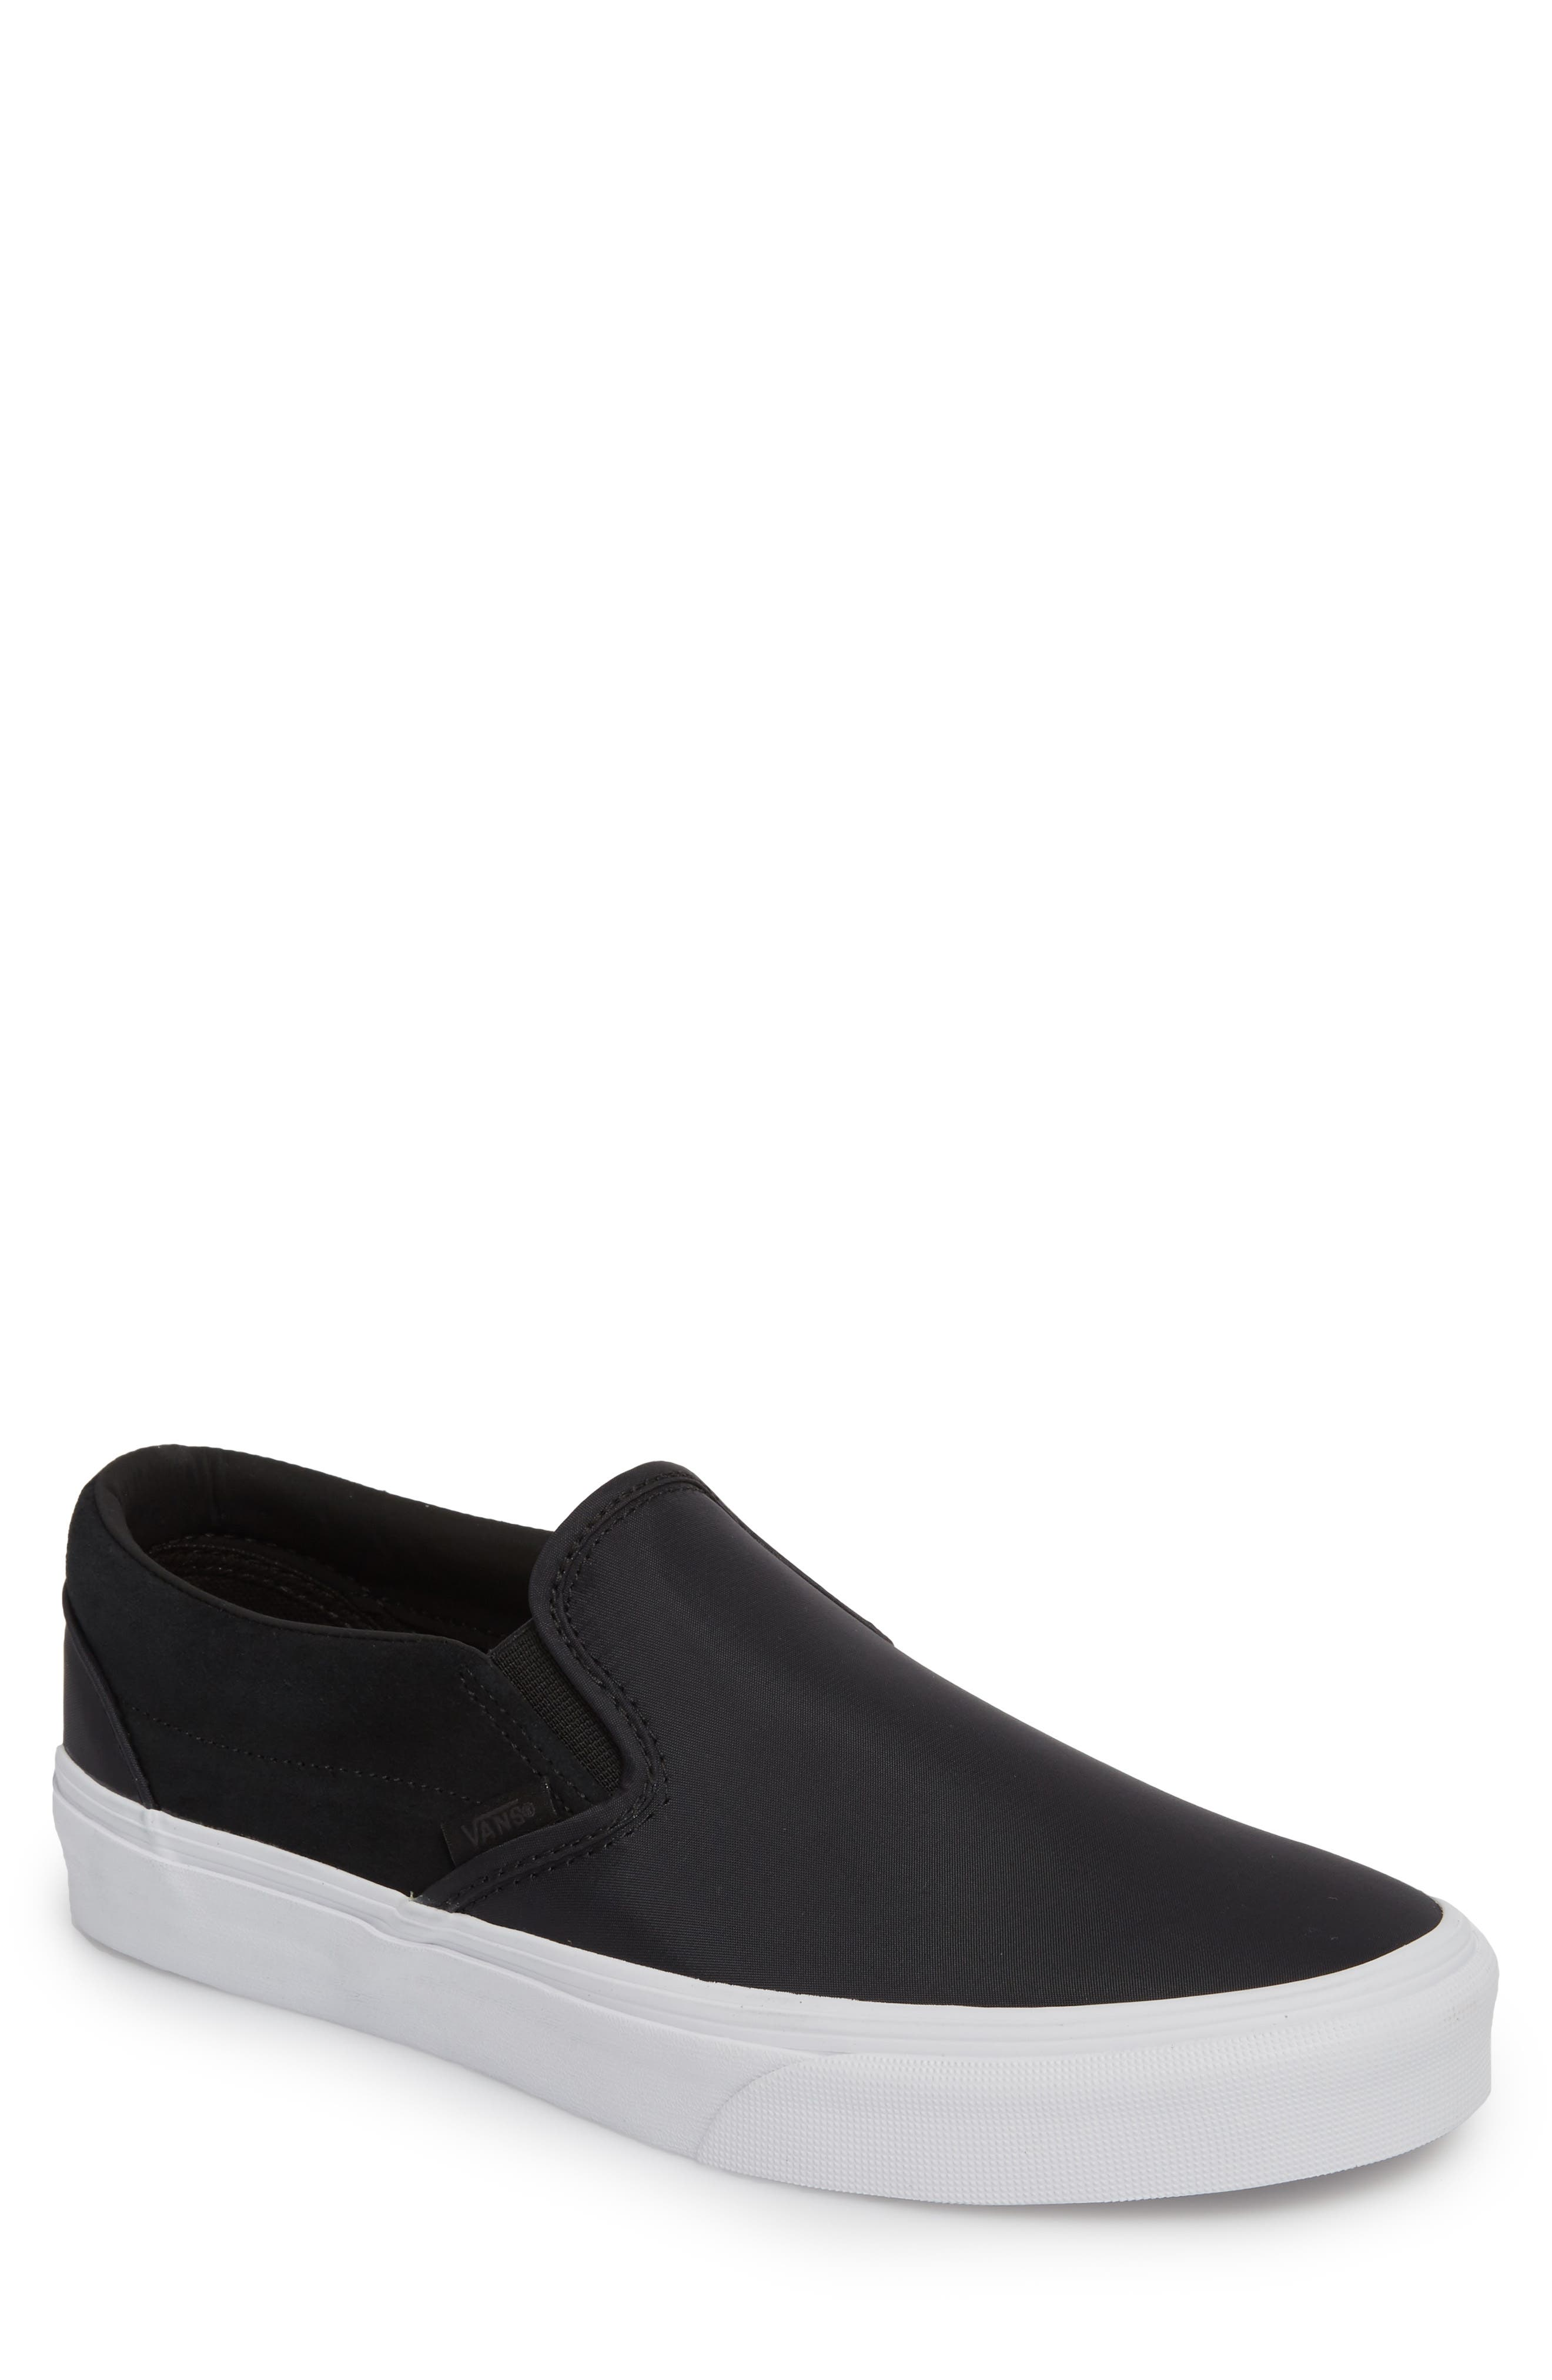 Surplus Nylon Slip-On Sneaker,                             Main thumbnail 1, color,                             001